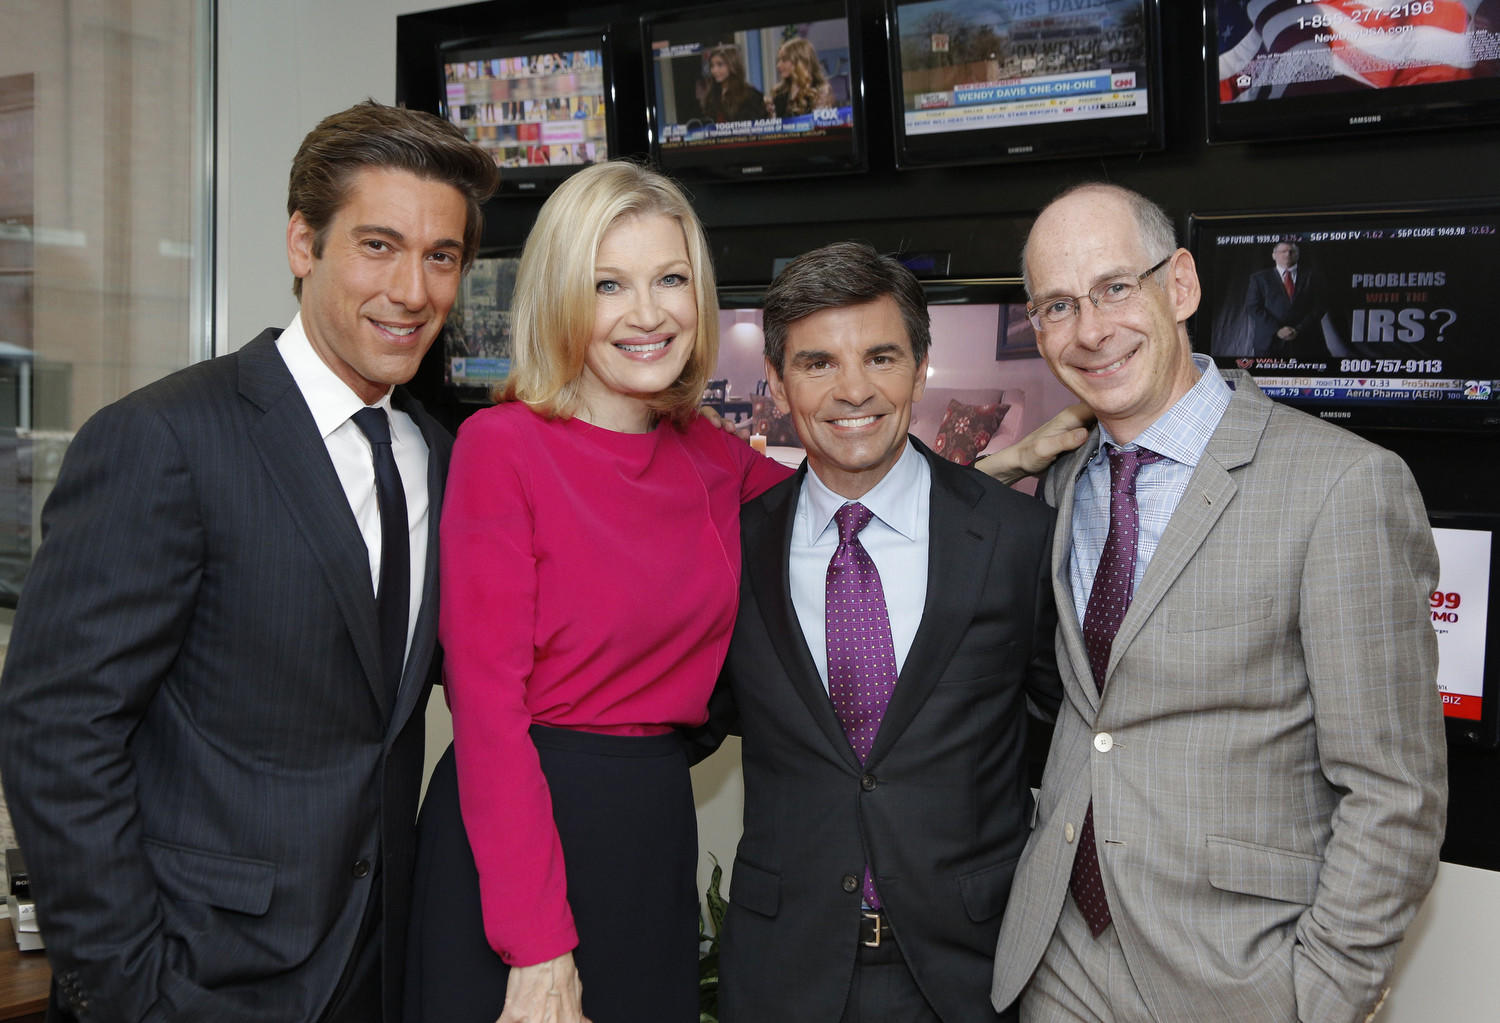 ABC News' David Muir, Diane Sawyer, George Stephanopoulos, James Goldston (President, ABC News)